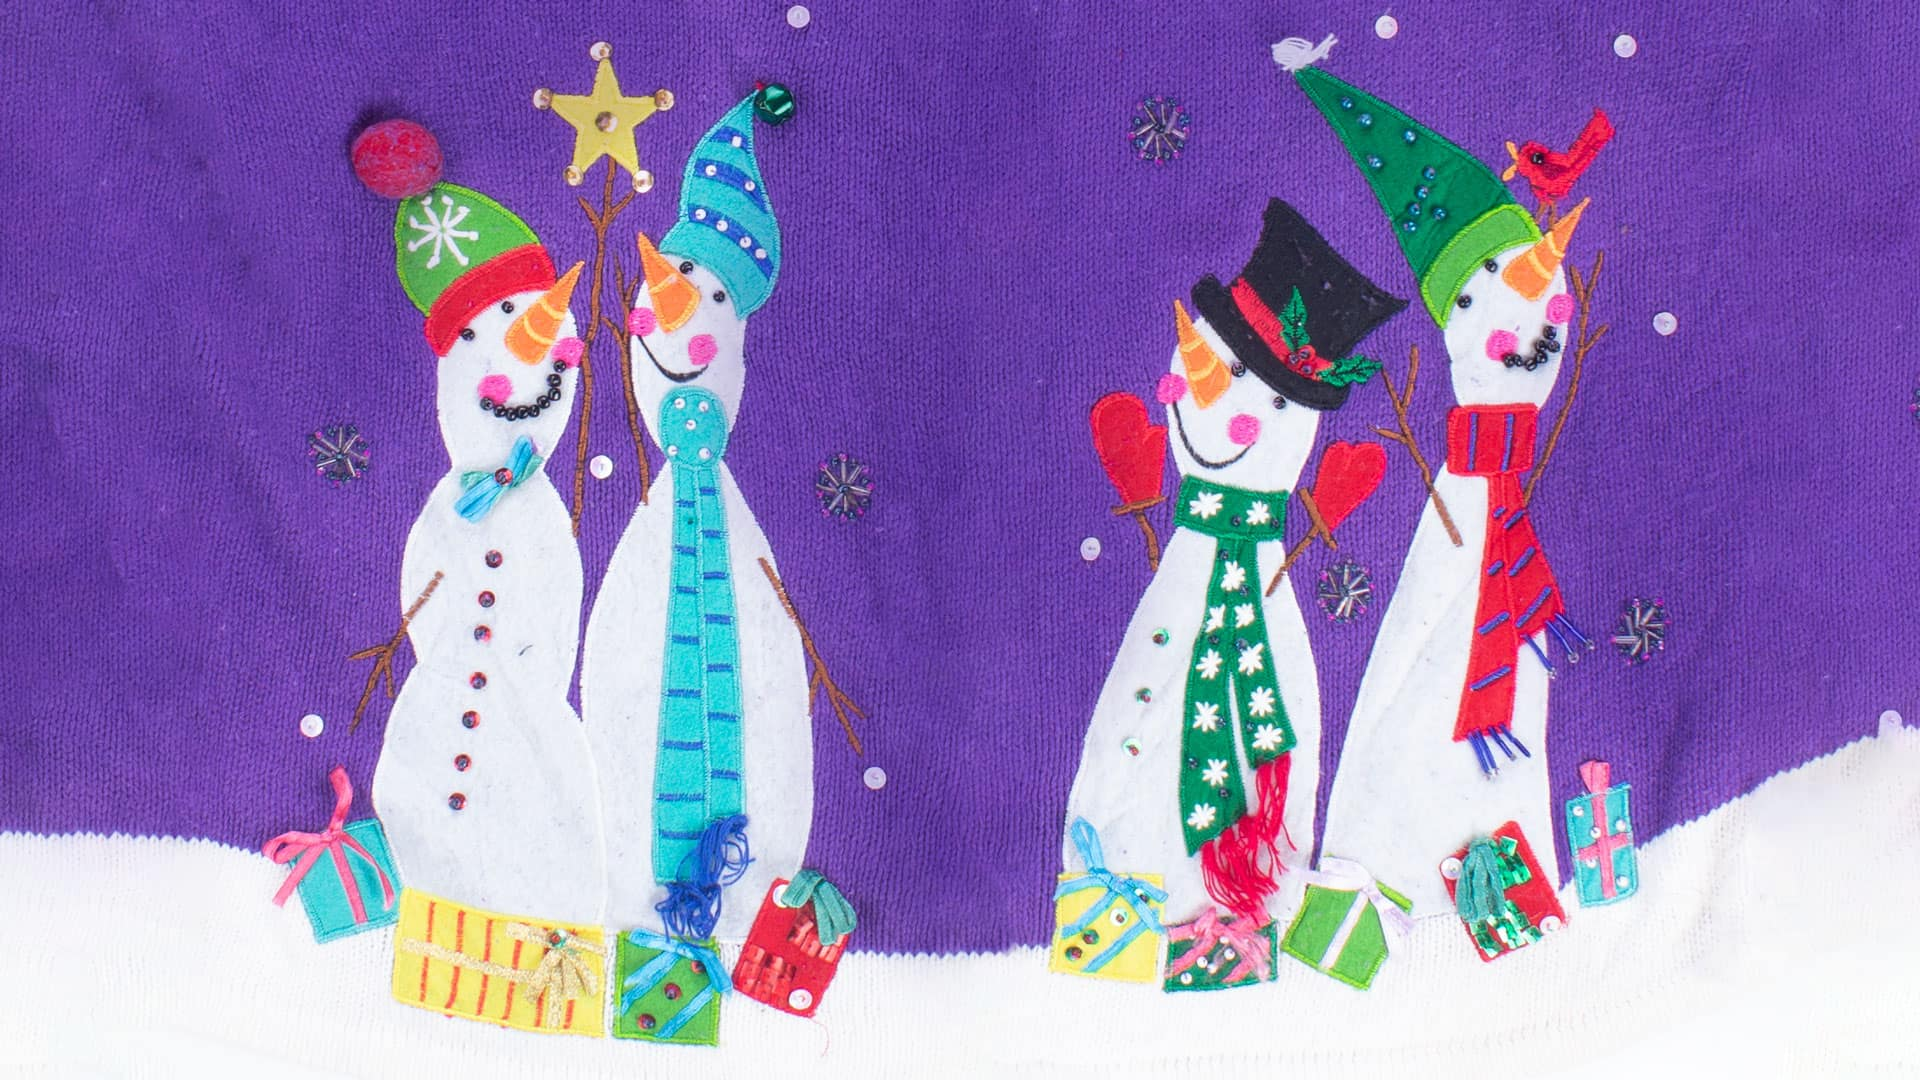 Ugly Christmas sweater featuring four snowmen all dressed up on a purple sweater background